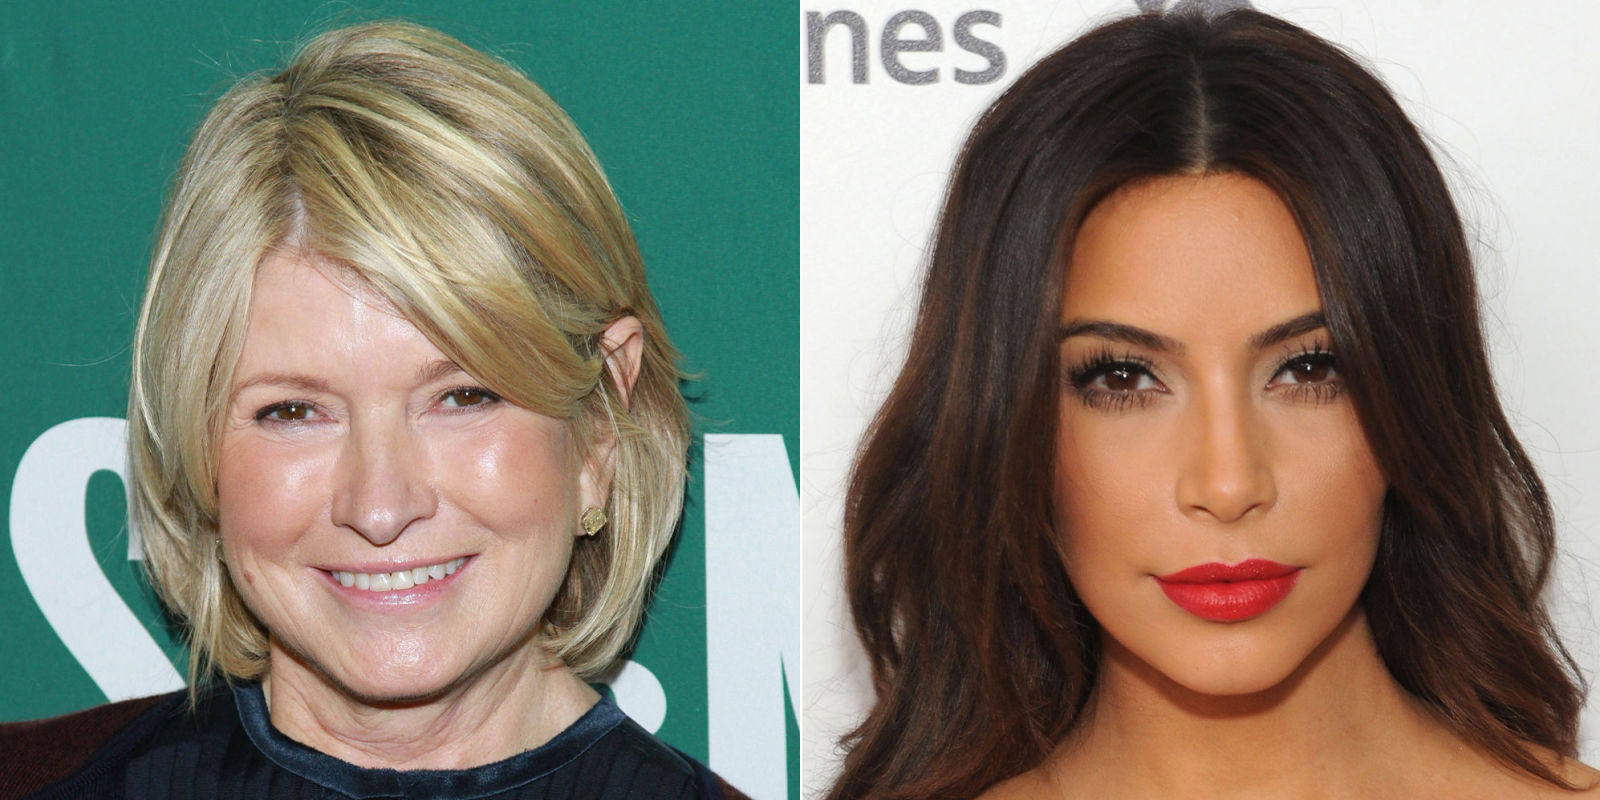 kim kardashian time most influential martha stewart kim kim kardashian time most influential martha stewart kim kardashian essay